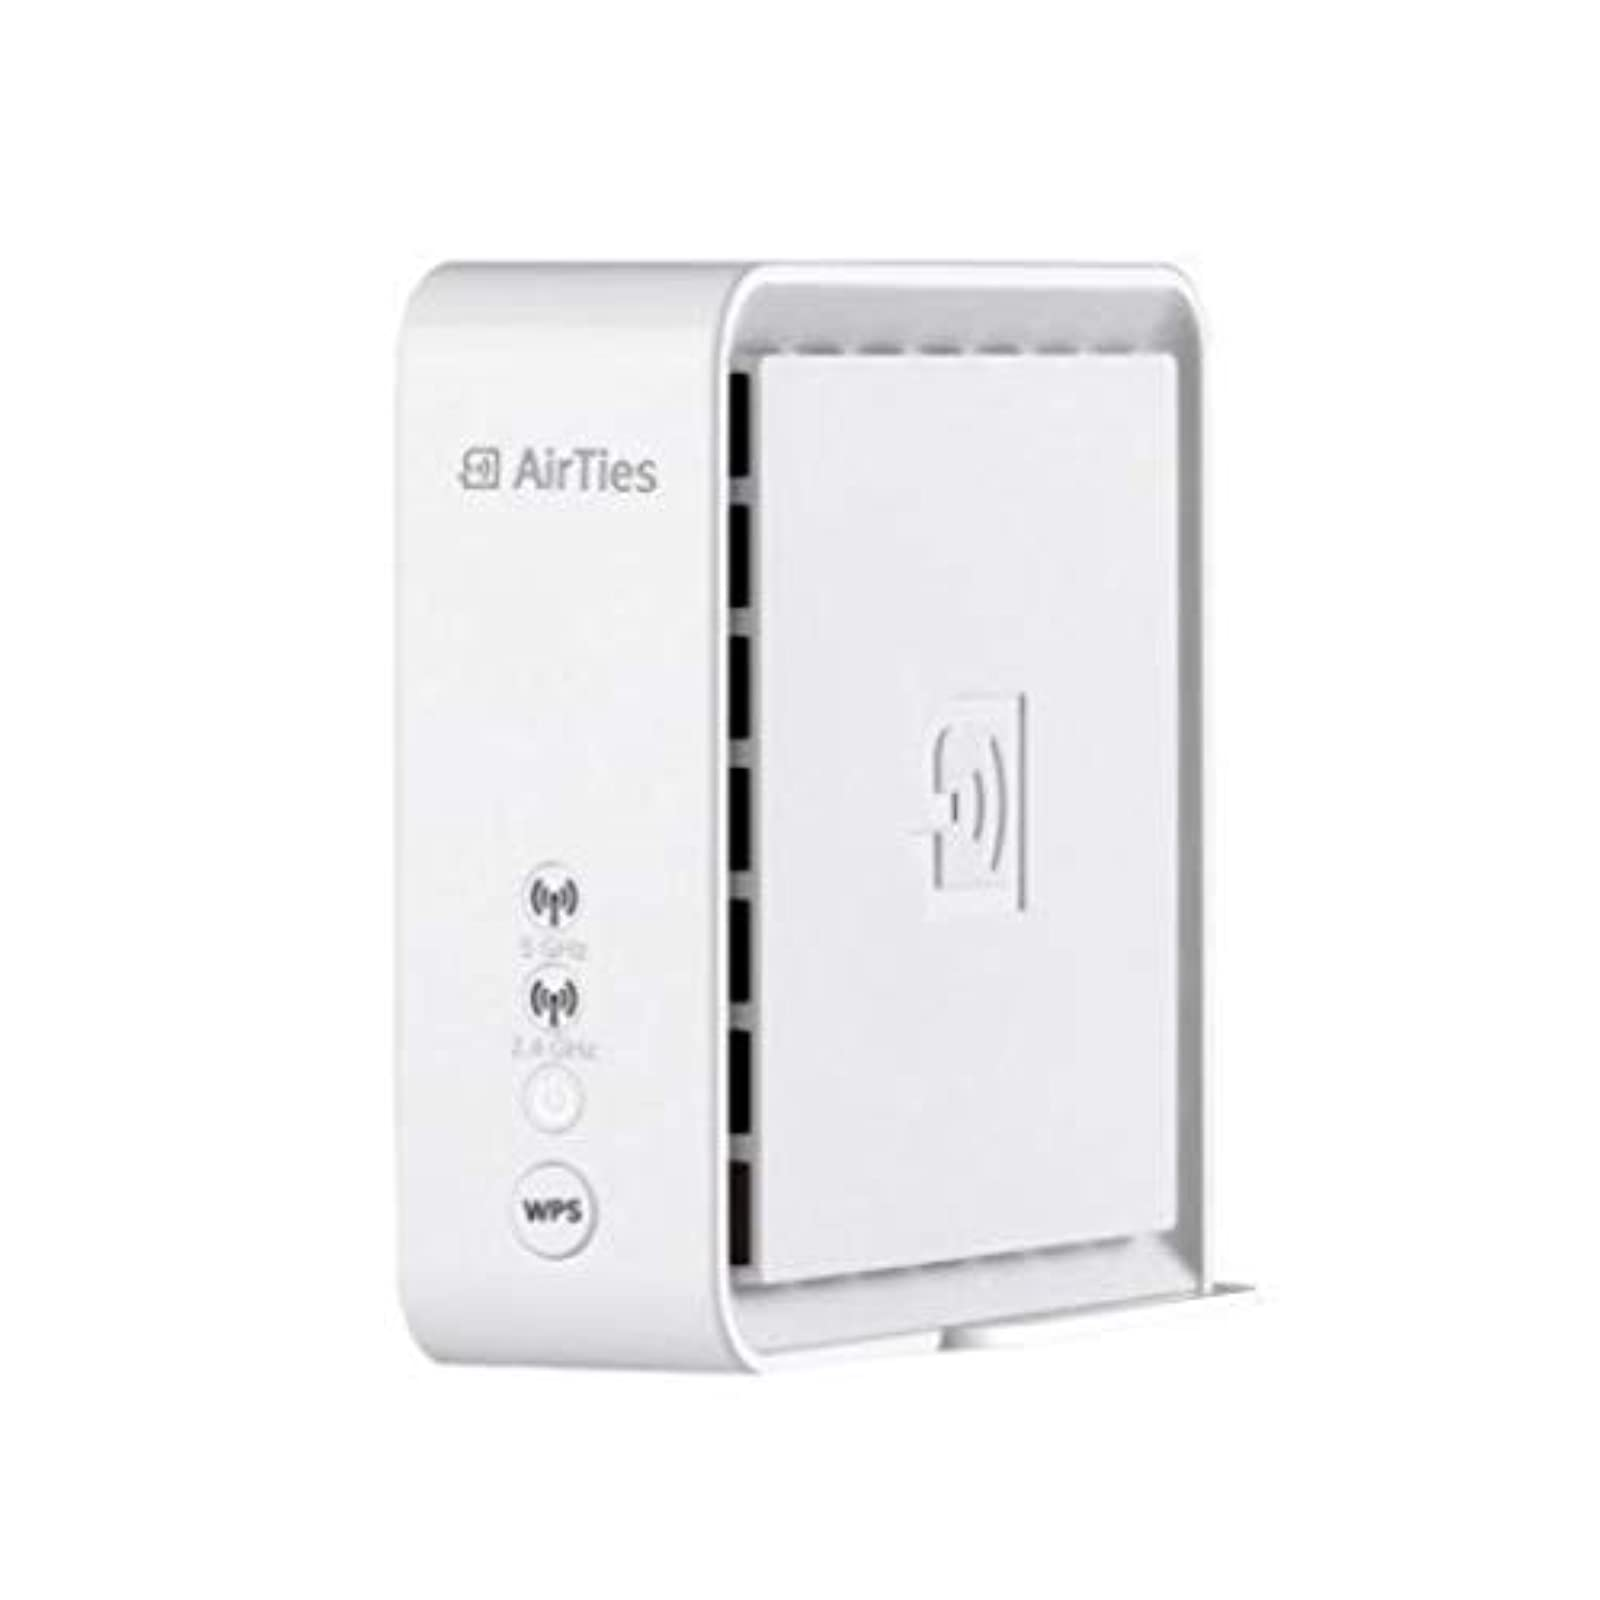 Airties Air 4920 Single Pack 1600 Mbps Smart Mesh Access Point White Extender